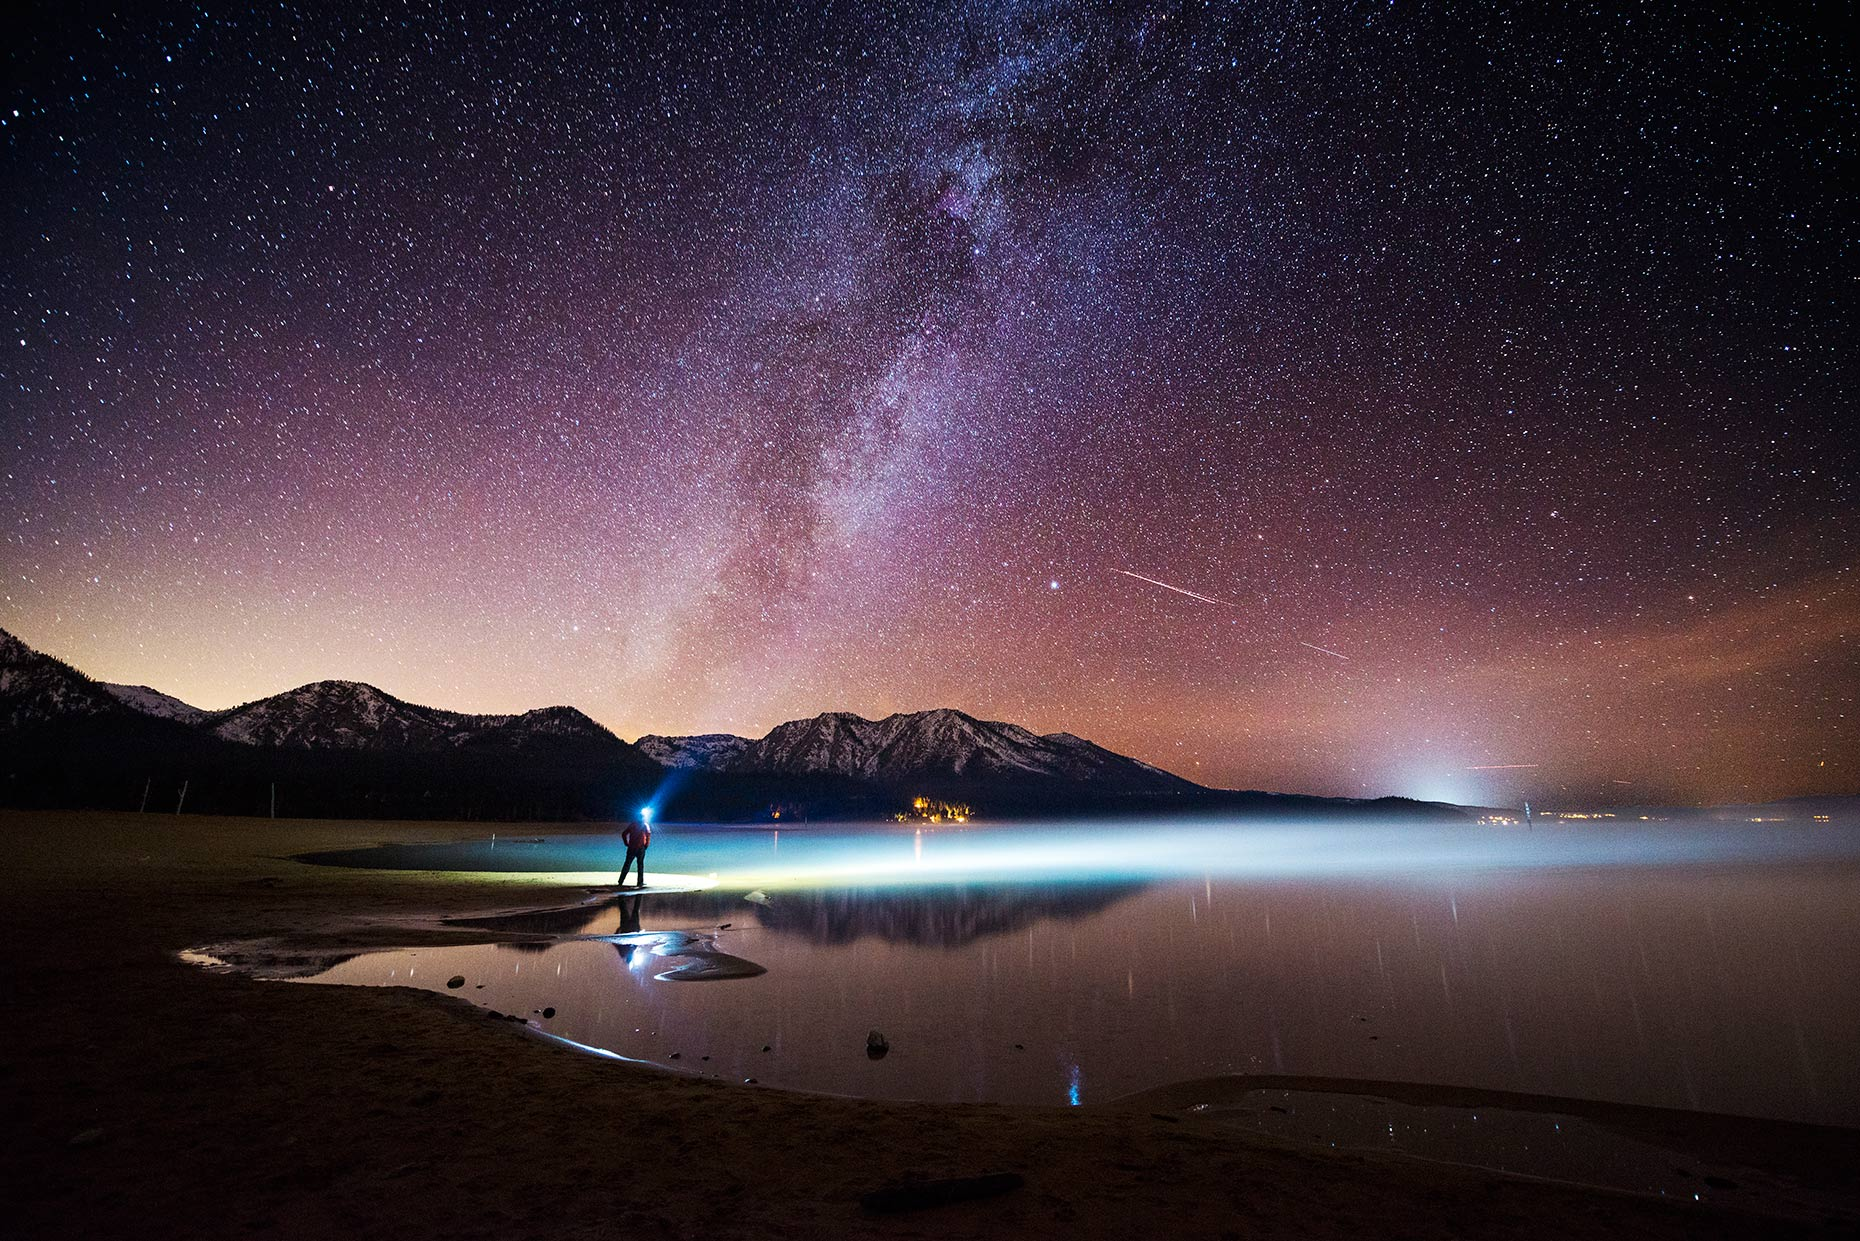 Night Sky - Milky Way Fog In South Lake Tahoe, California